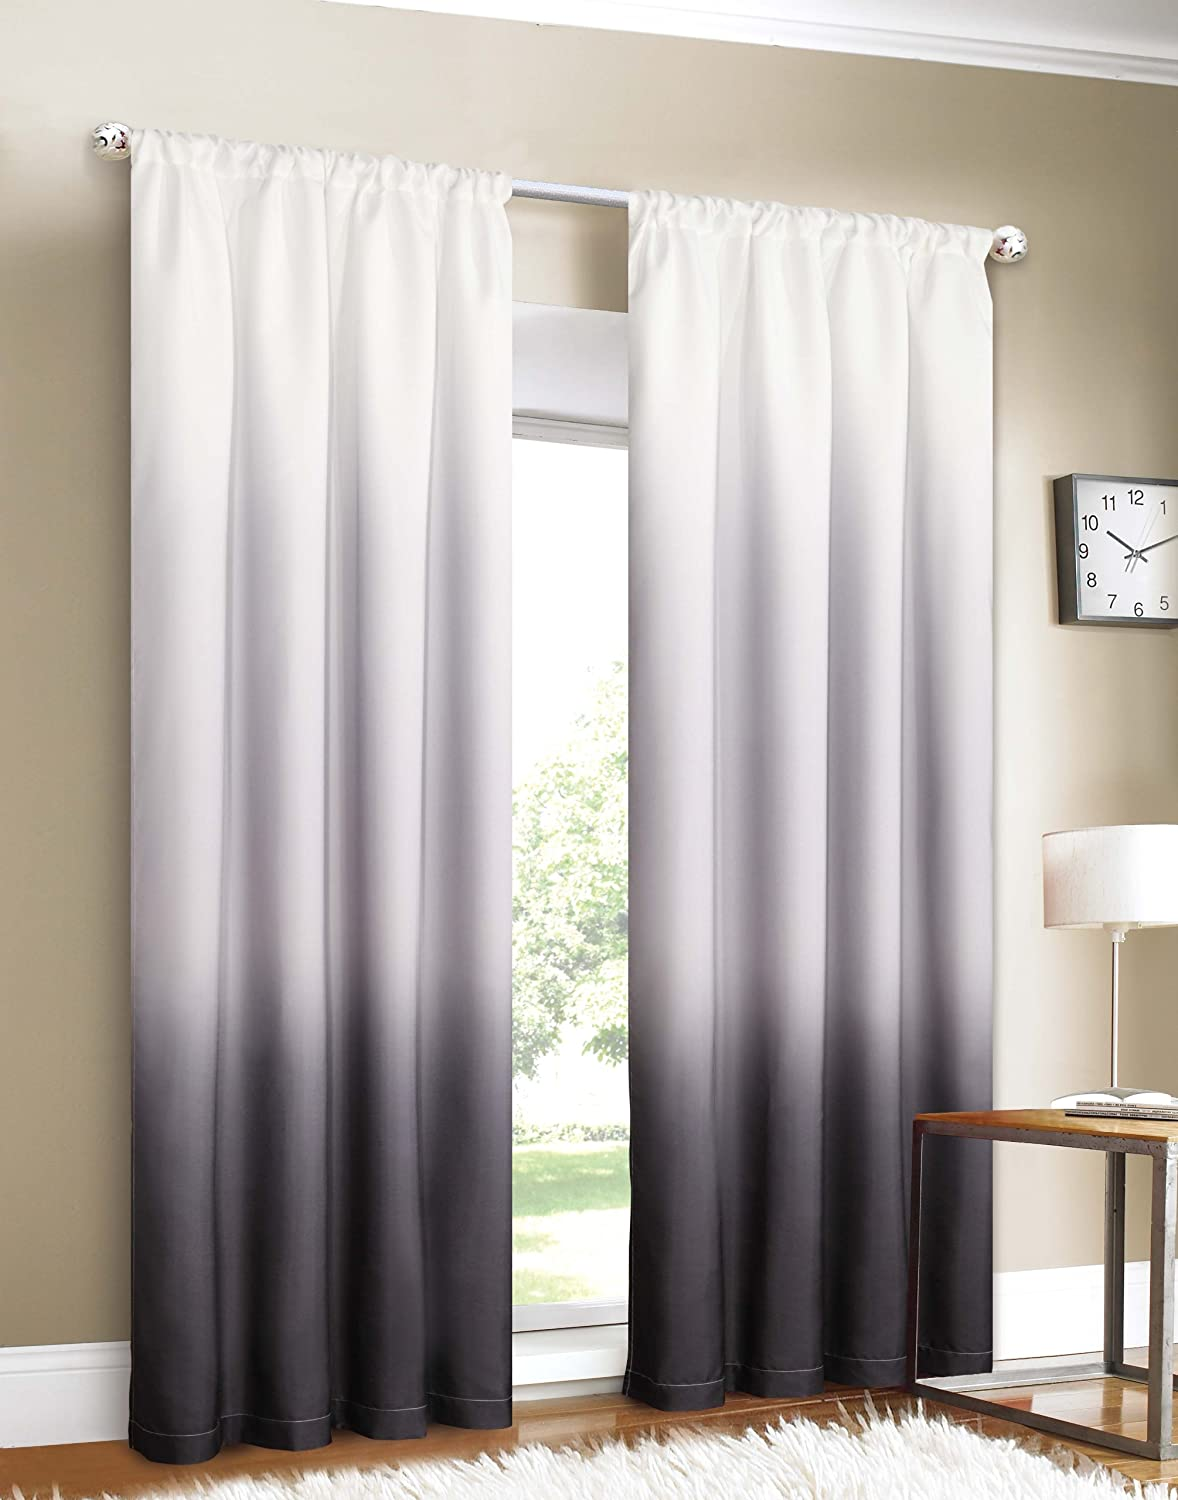 Black ombre curtains - Amazon Com Dainty Home Shades 2 Window Panel Rod Pocket Set 40 By 84 Inch Black Home Kitchen